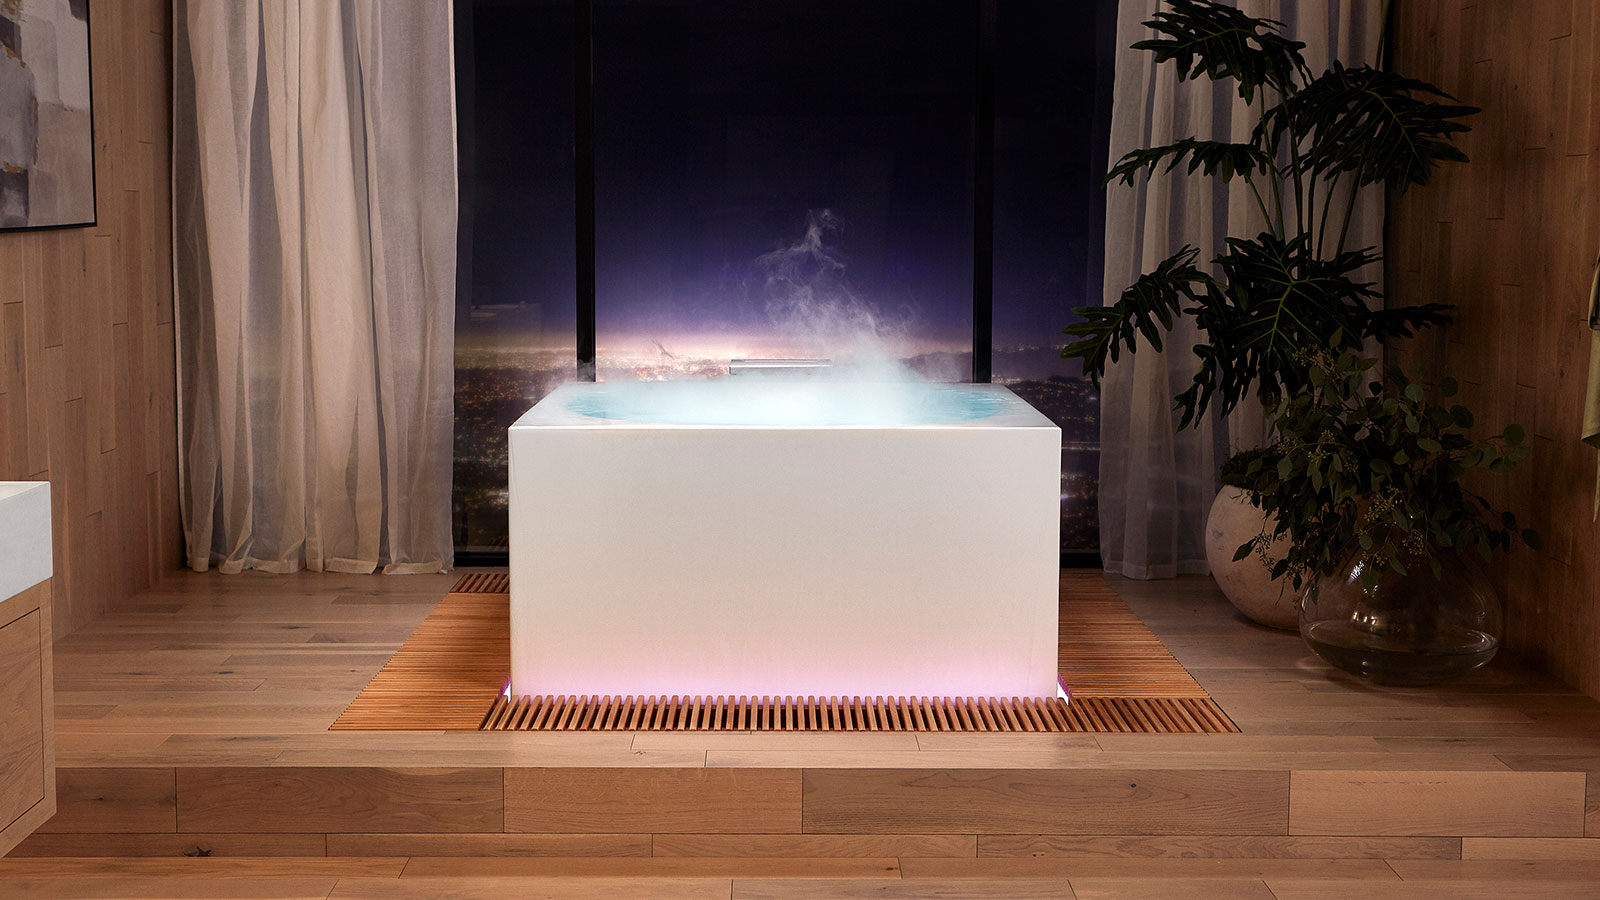 Kohler expands its smart home line with a $16,000 Infinity Experience smart soaking tub